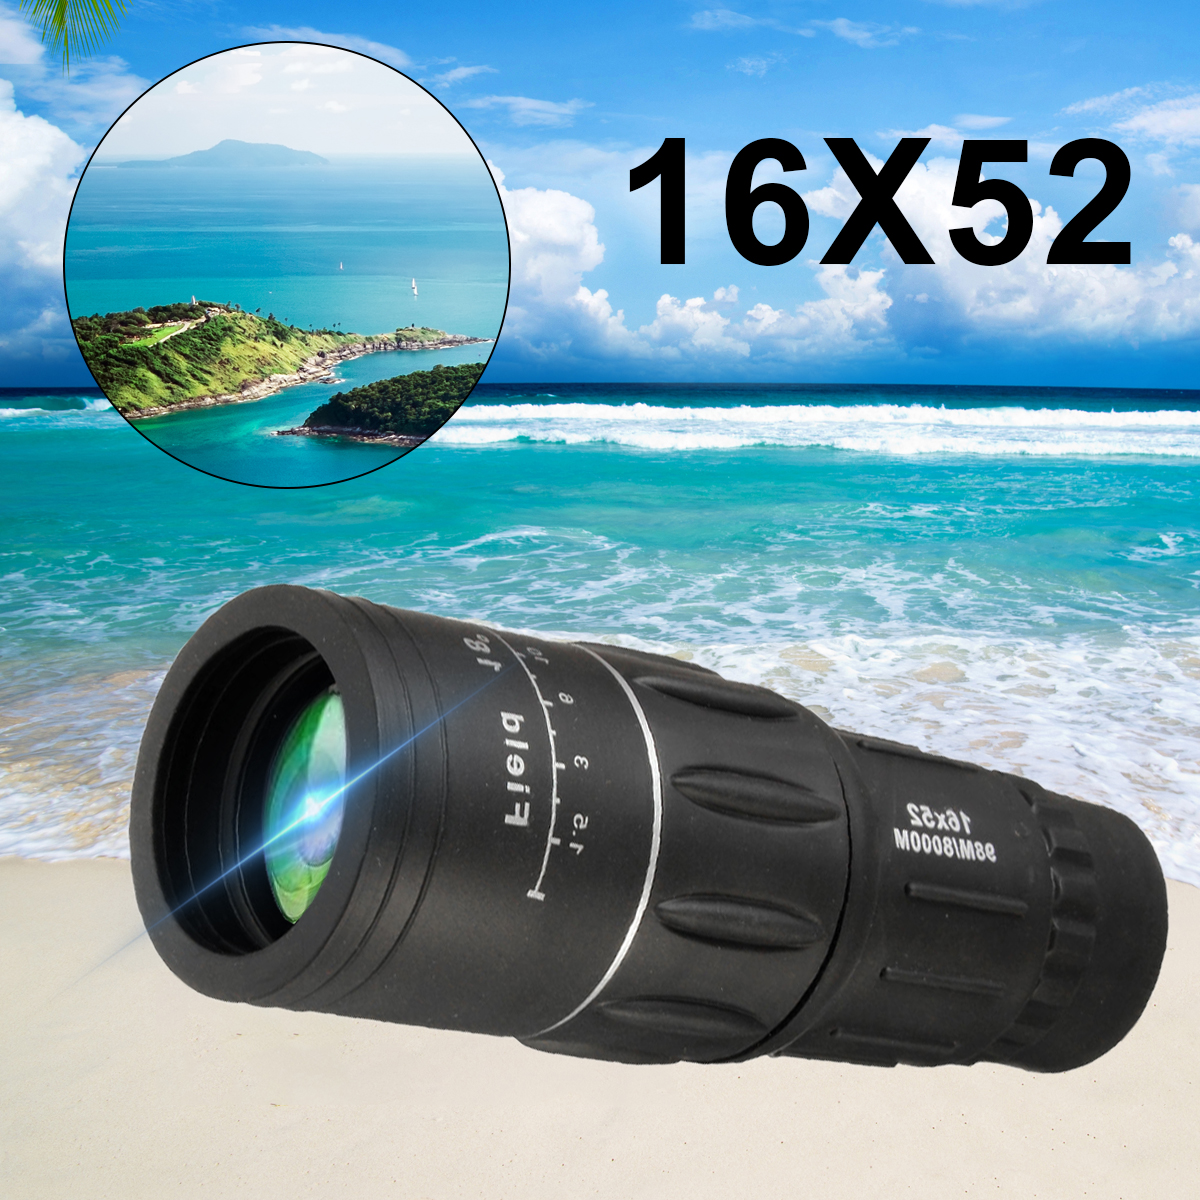 16x52 HD Portable Handheld Monocular Telescope Day Night Vision Dual Focus Optical Zoom Waterproof For Hiking Camping Hunting Sightseeing Valentine's Gifts